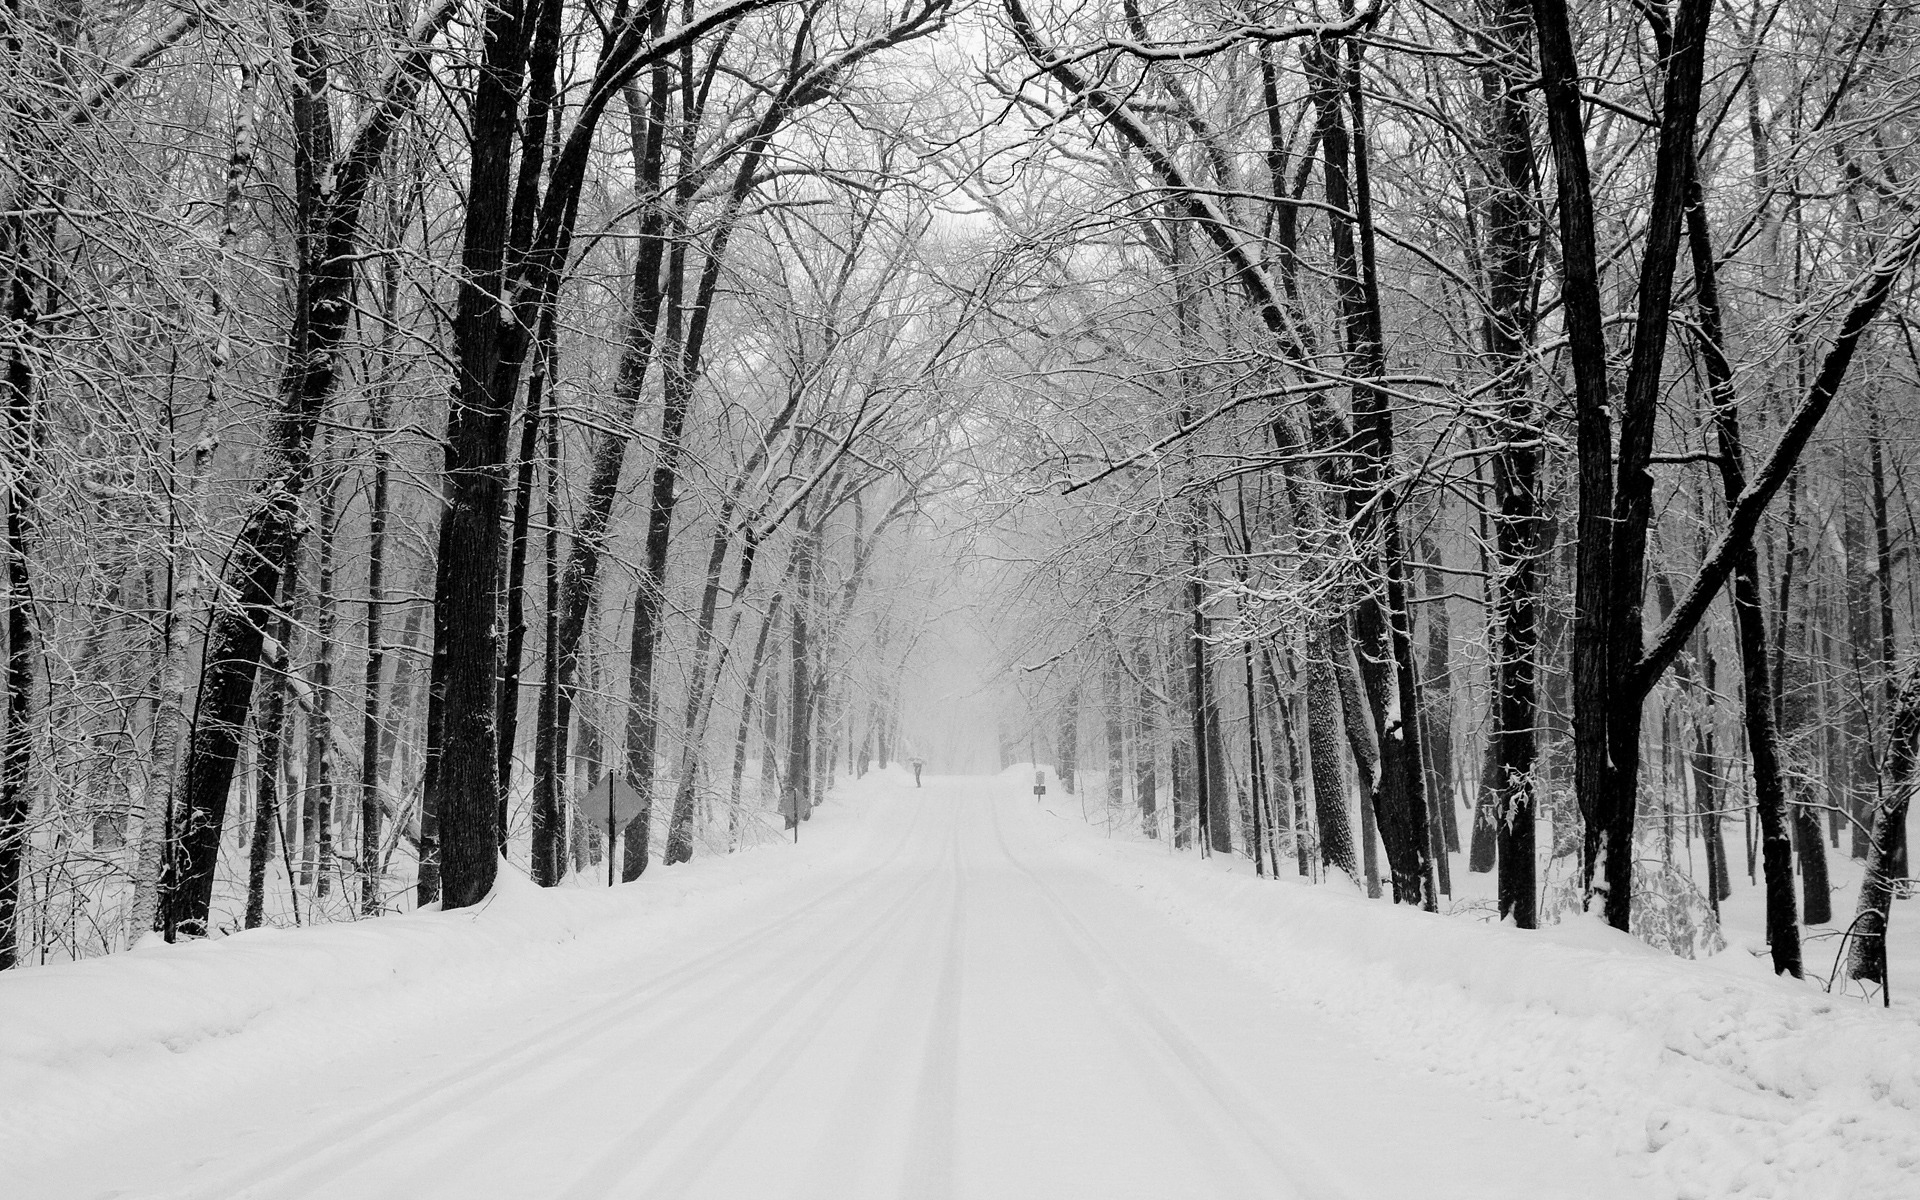 Snowy Road Wallpaper Winter Nature Wallpapers